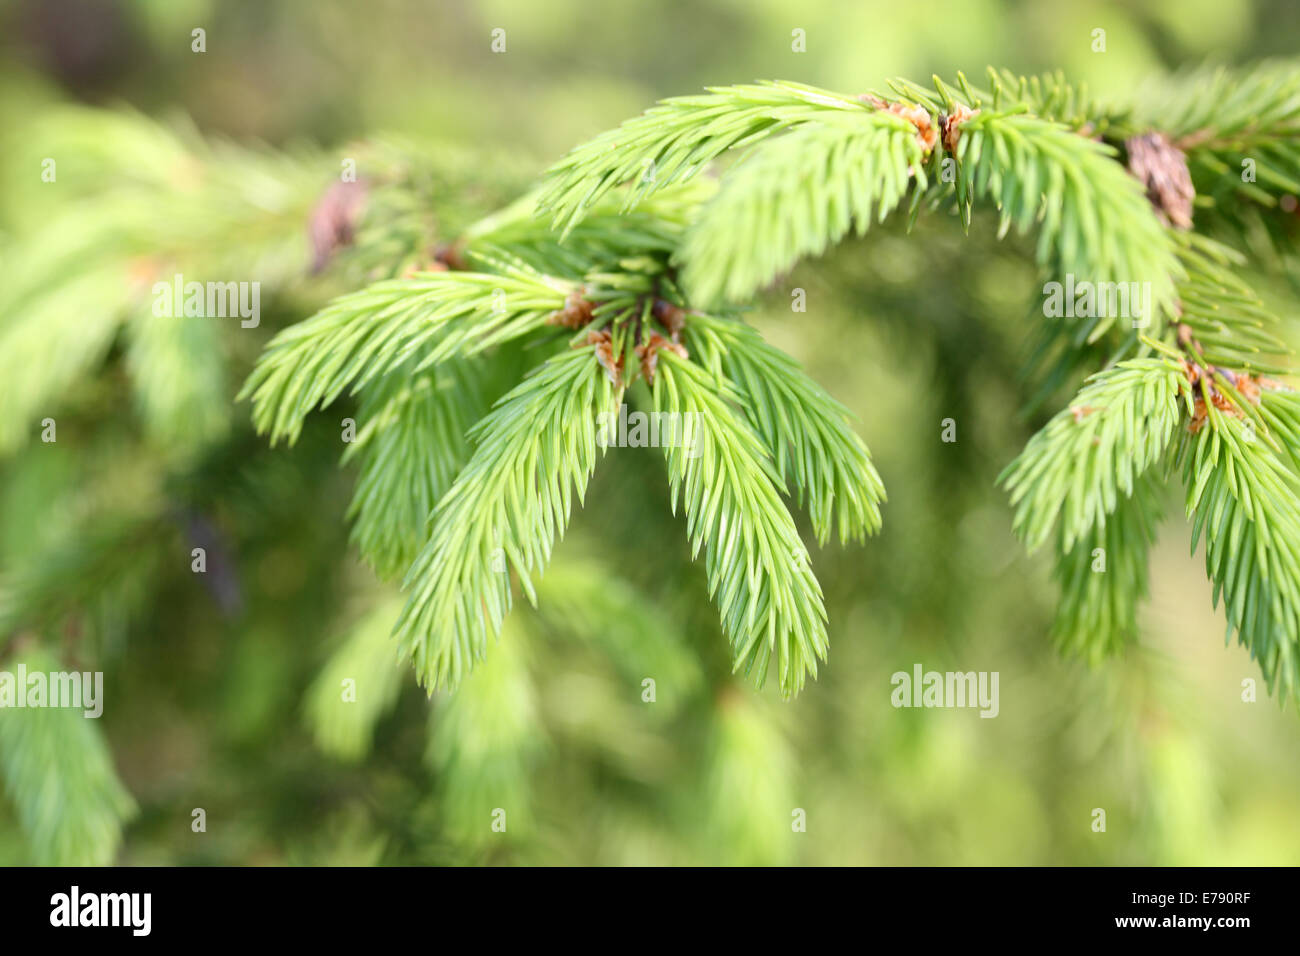 Spruce branch close-up - Stock Image